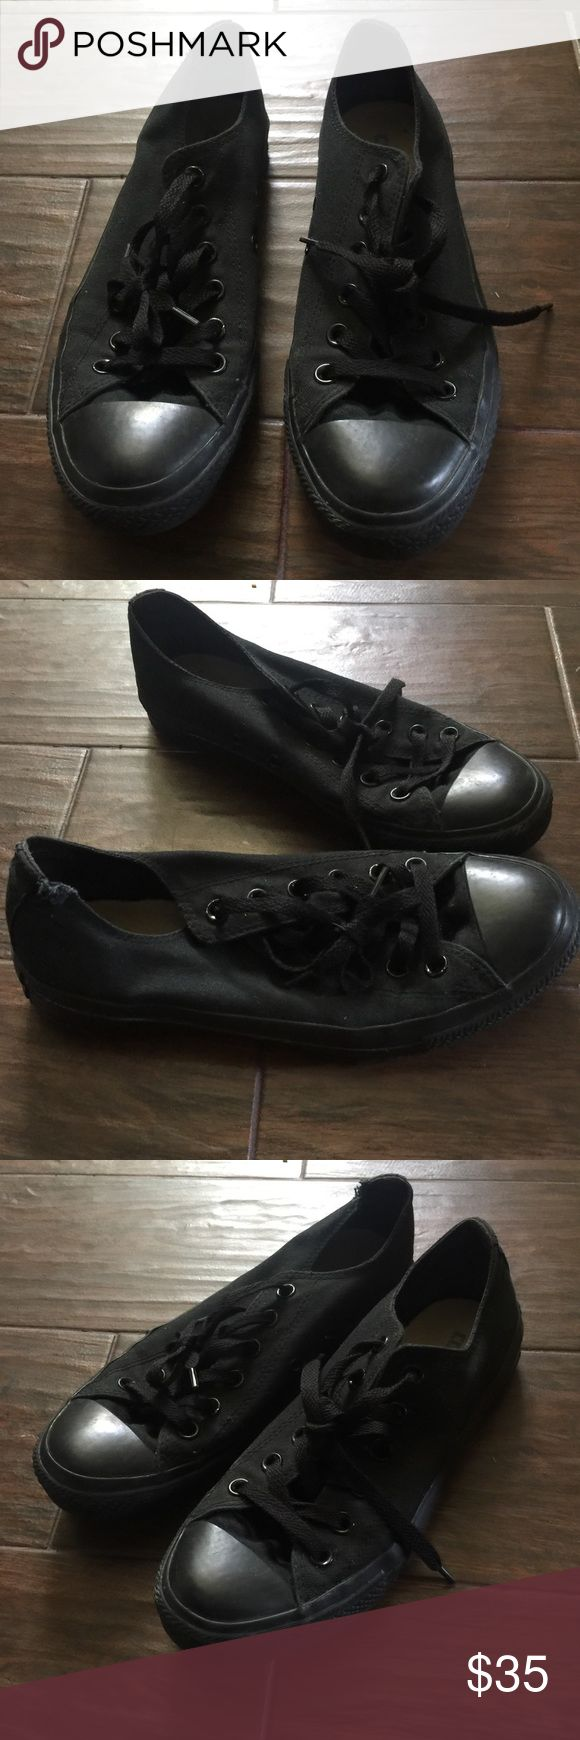 Black Low Top Converse All Star Shoes All black low top Converse All Star shoes in excellent used condition.  Size 8 in women's Converse Shoes Sneakers